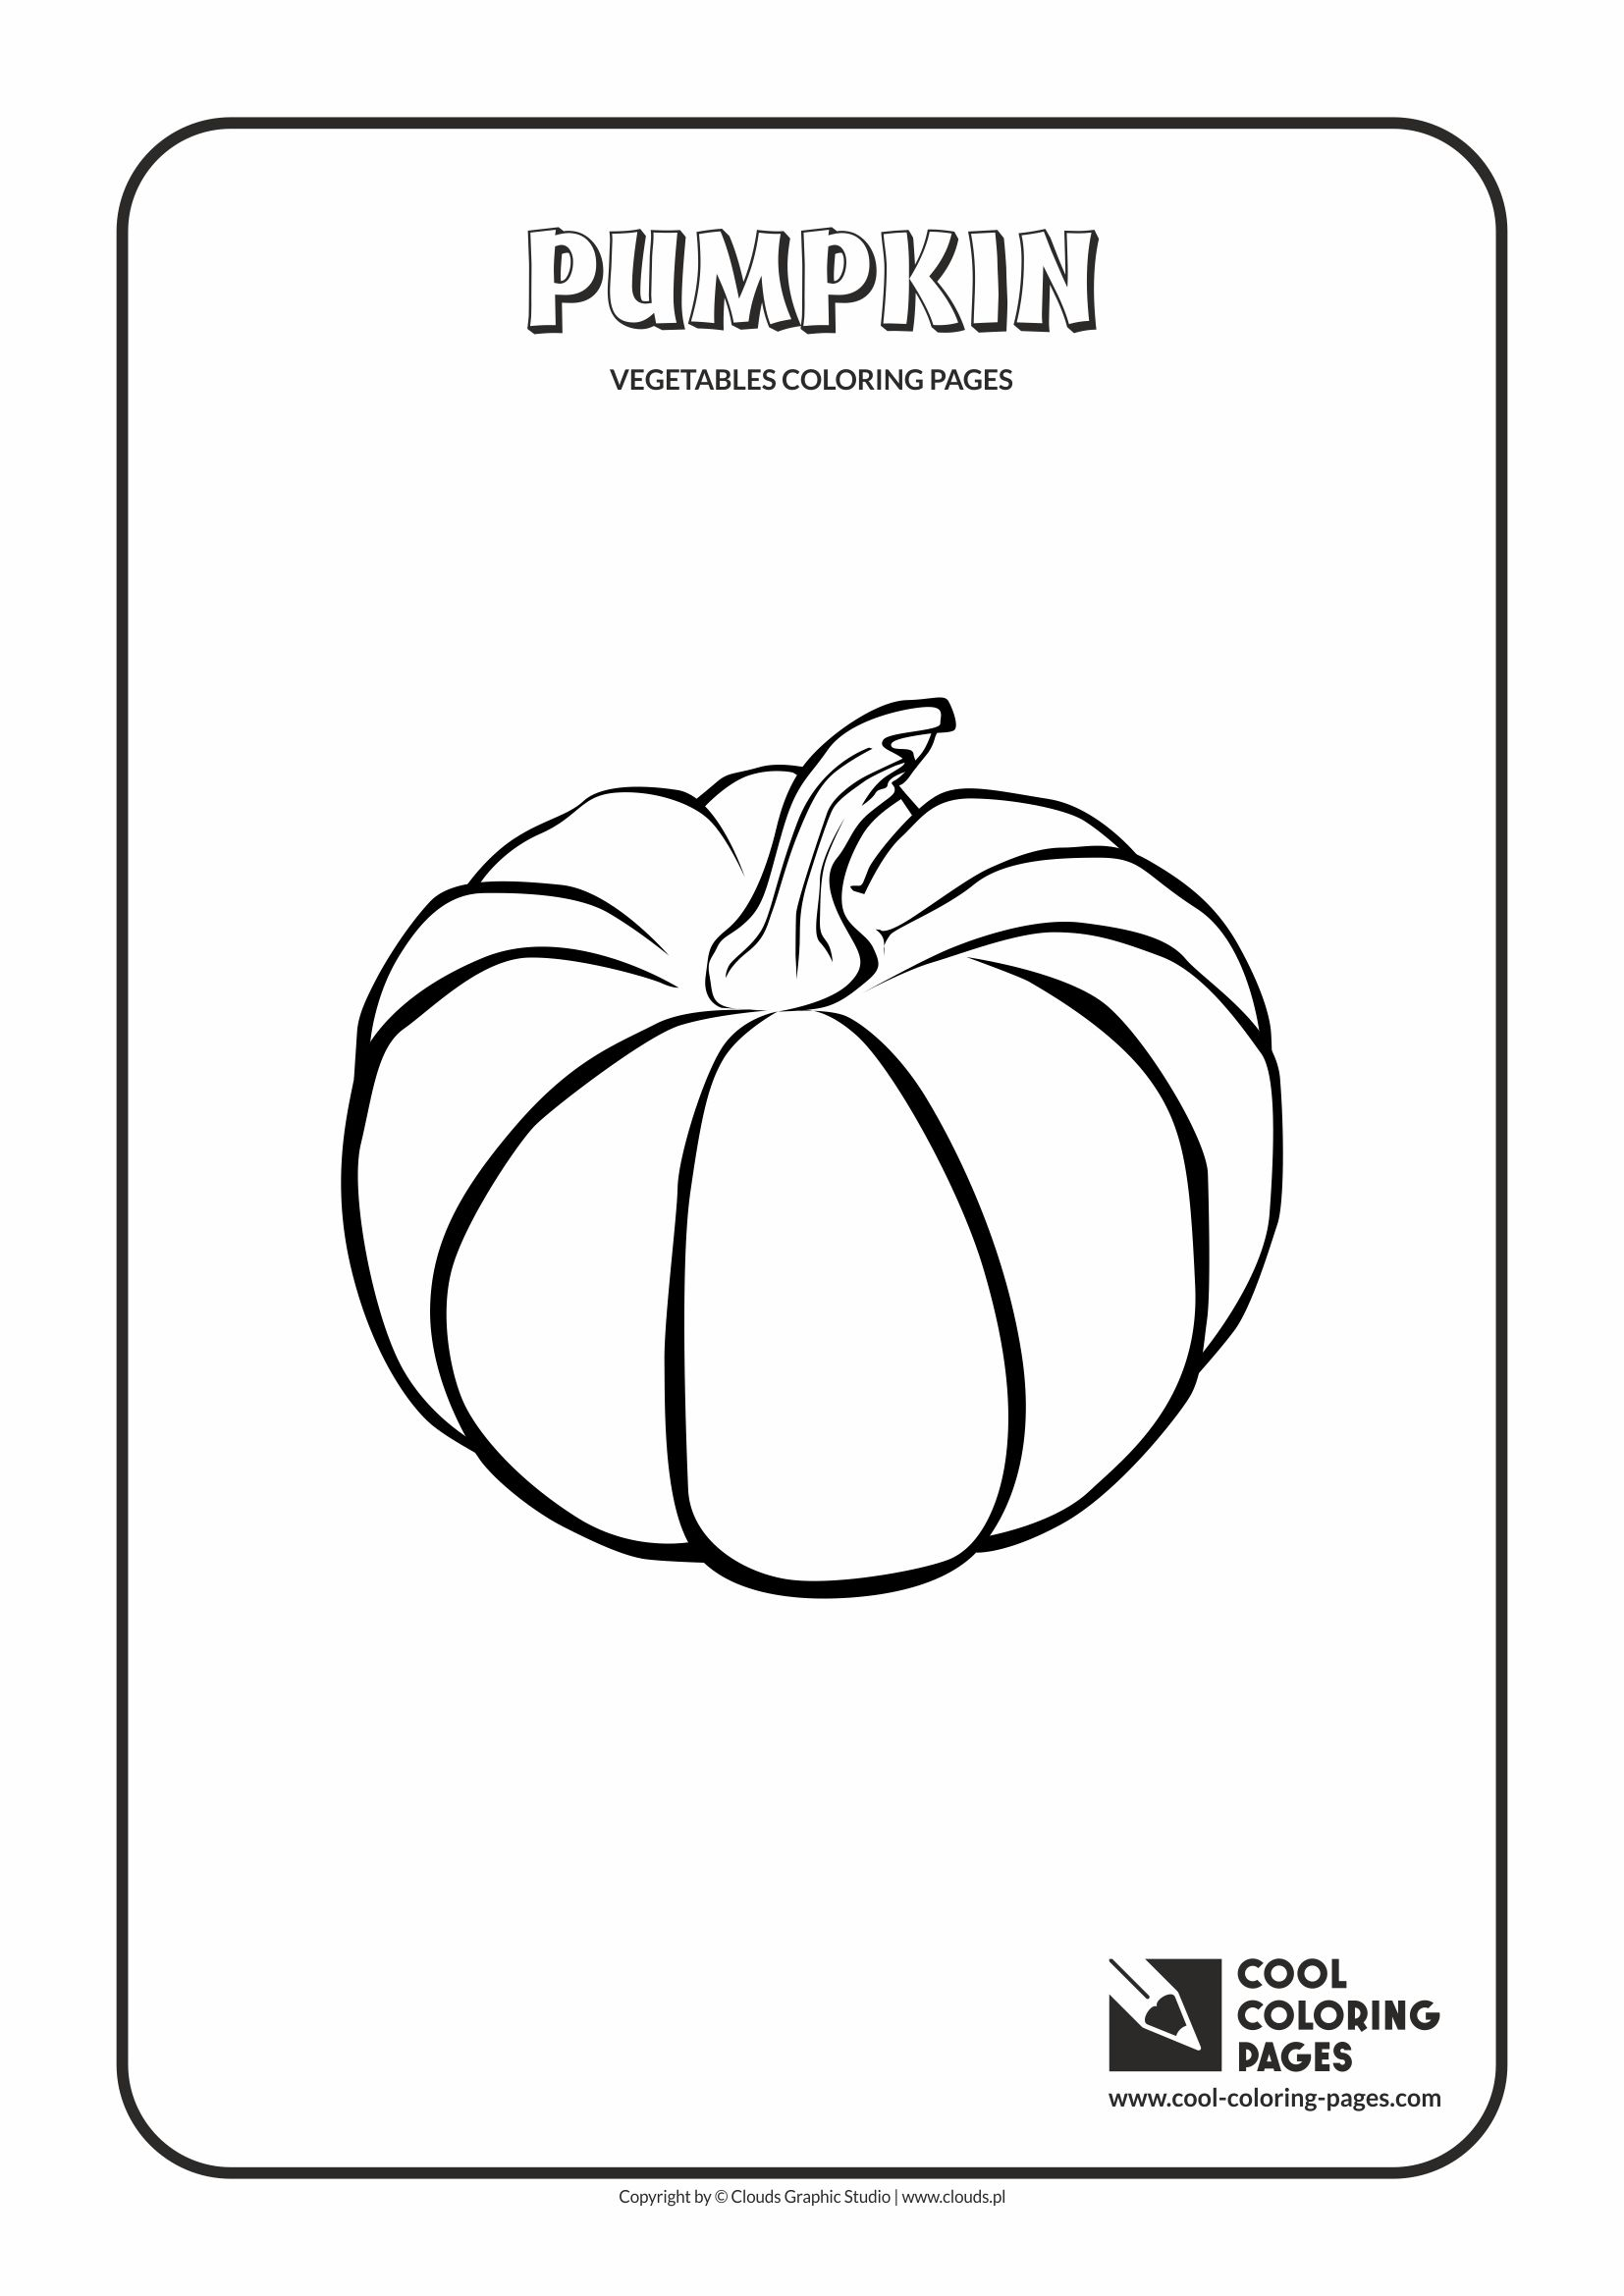 Cool Coloring Pages - Plants / Pumpkin / Coloring page with pumpkin